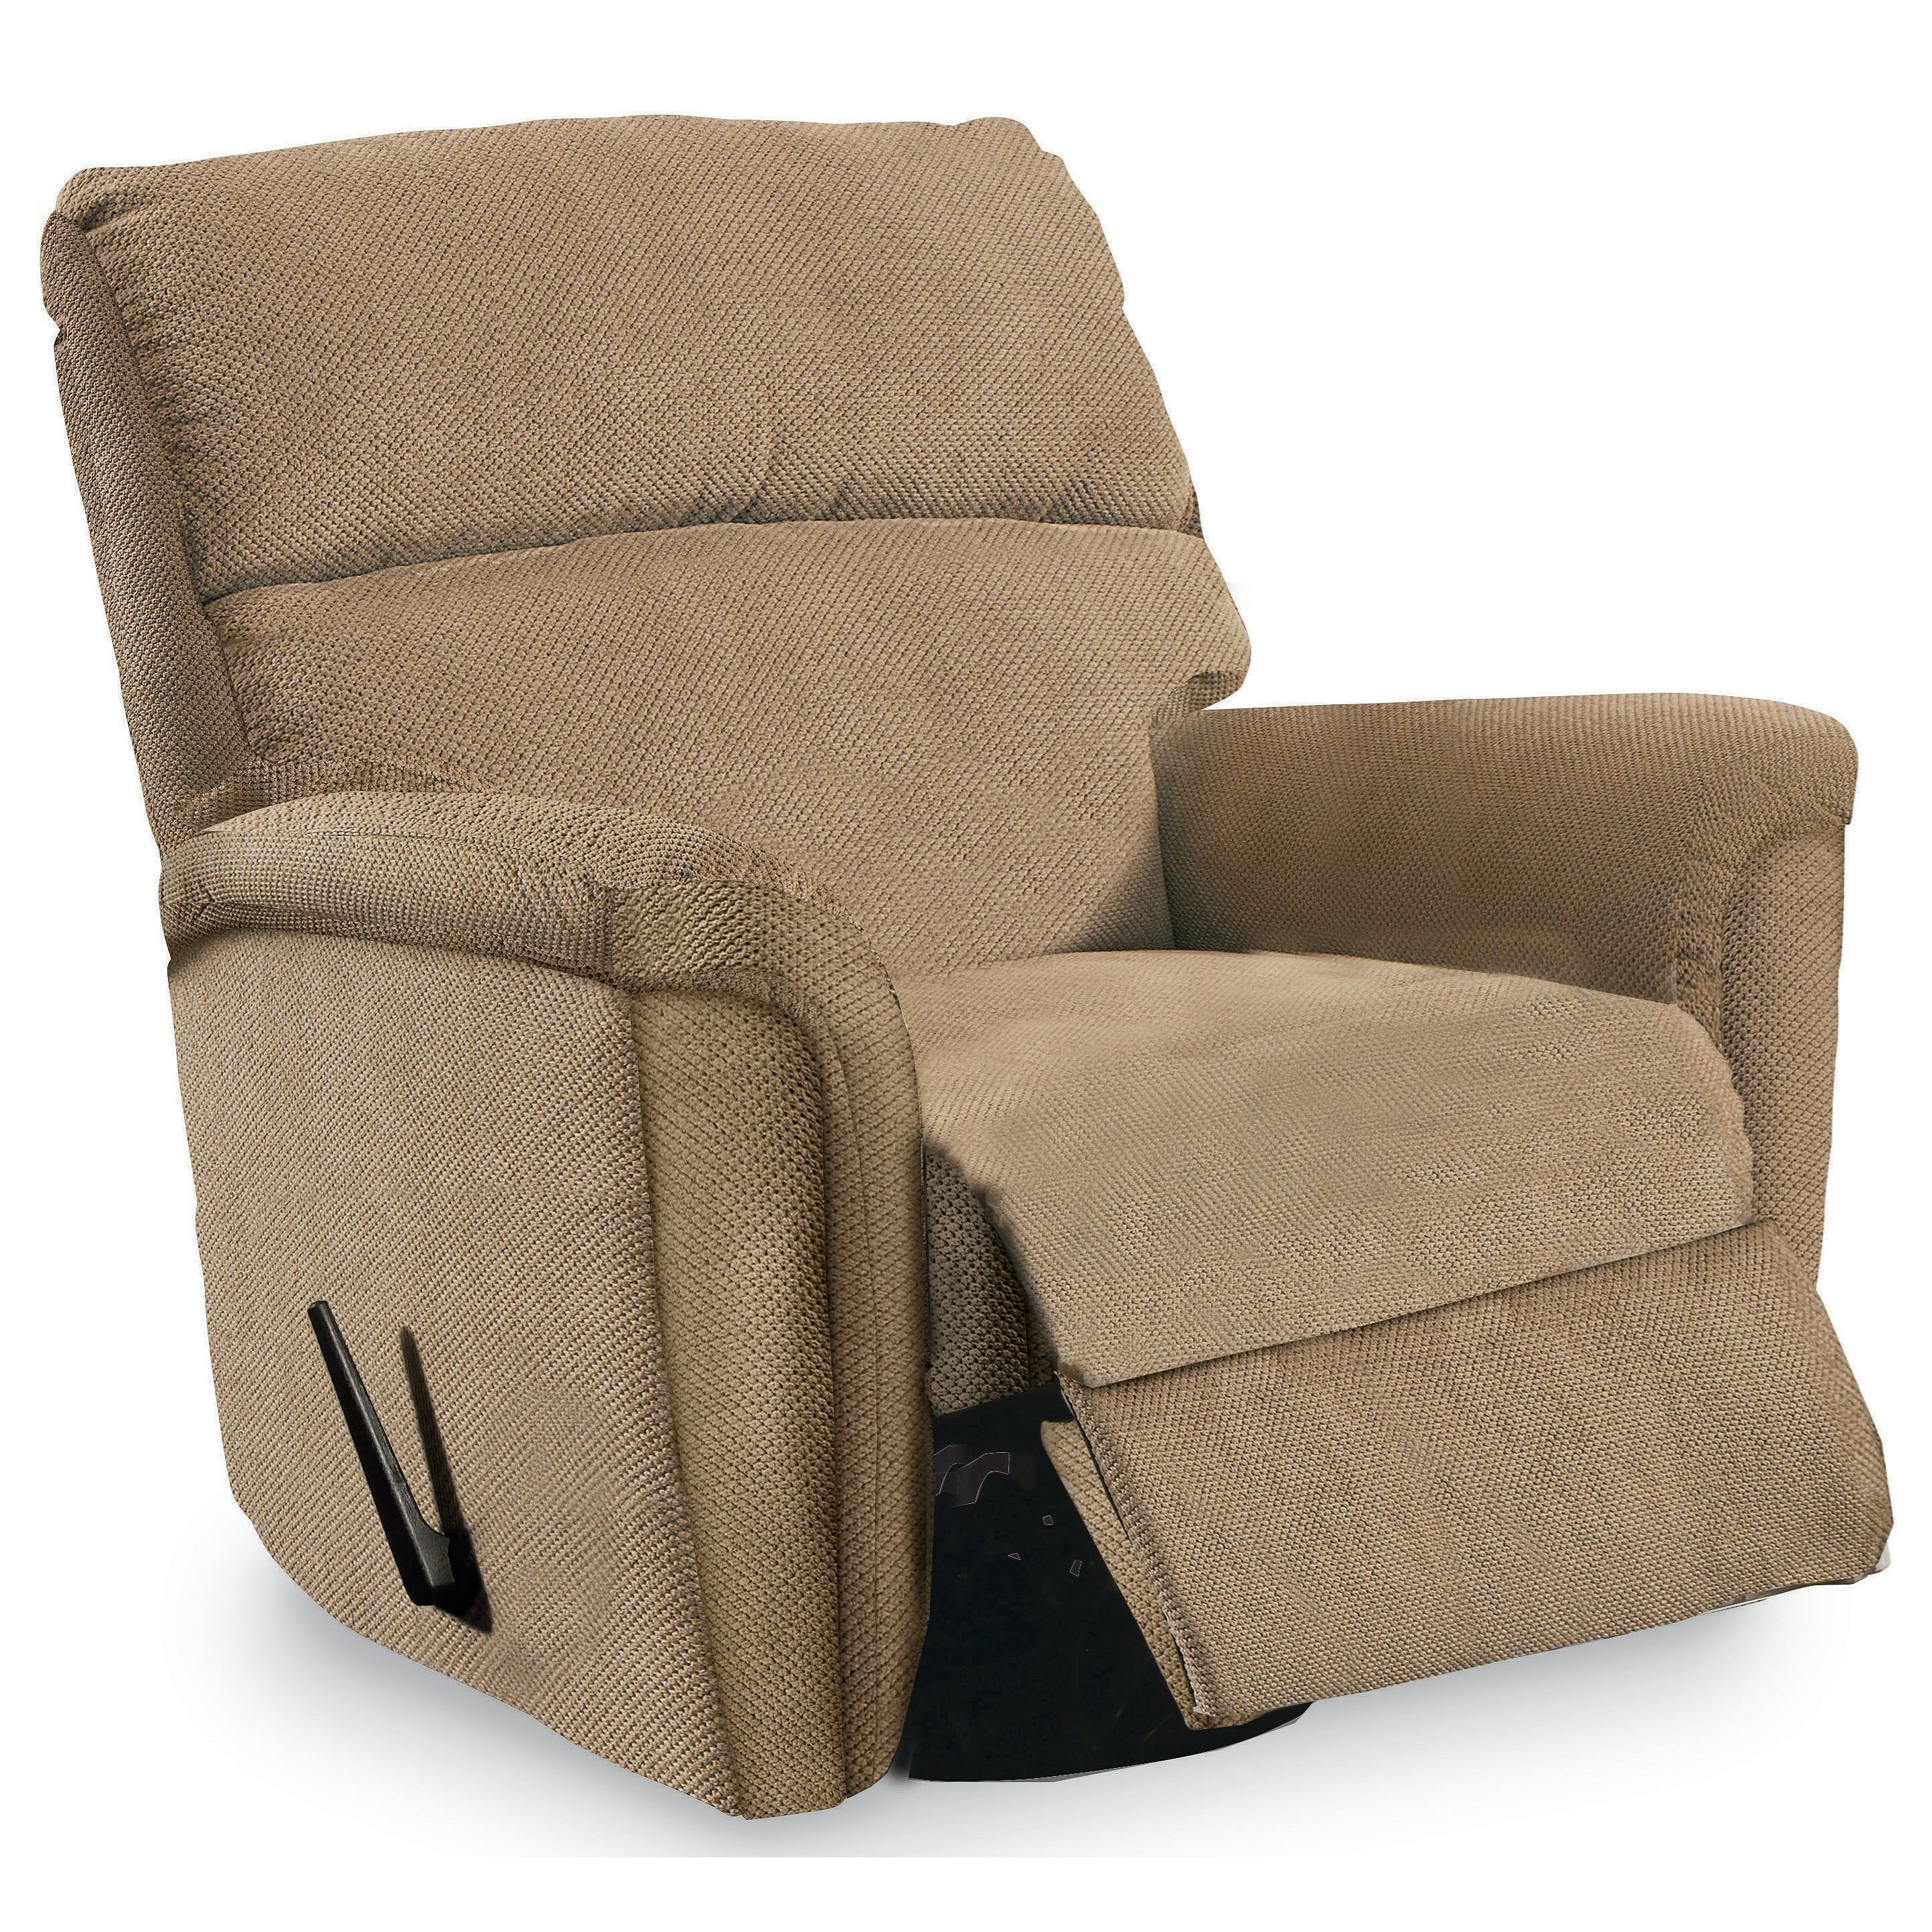 Lane grand torino glider rocker recliner with pad over for Bulldog pad over chaise rocker recliner